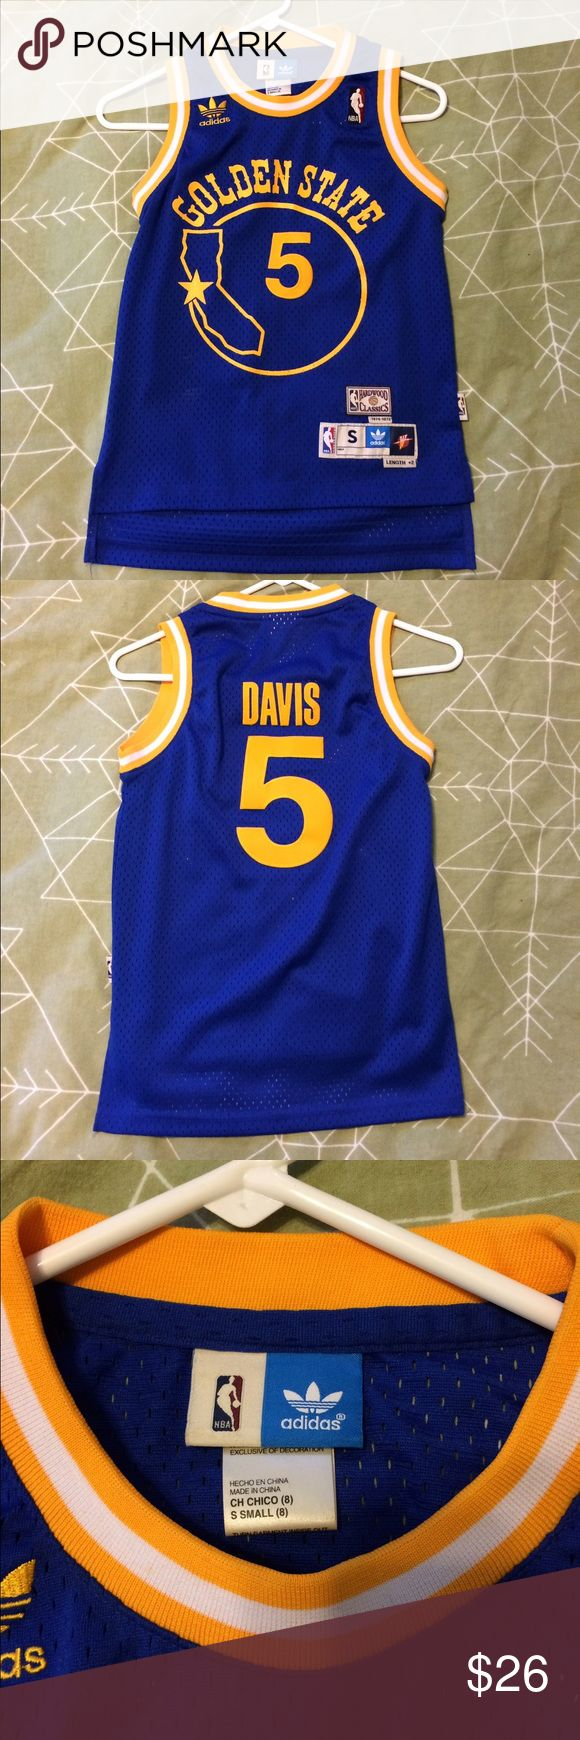 Golden State Warriors - Baron Davis 5 Jersey Golden State Warriors - Baron Davis 5 Jersey Adidas Shirts & Tops Tank Tops